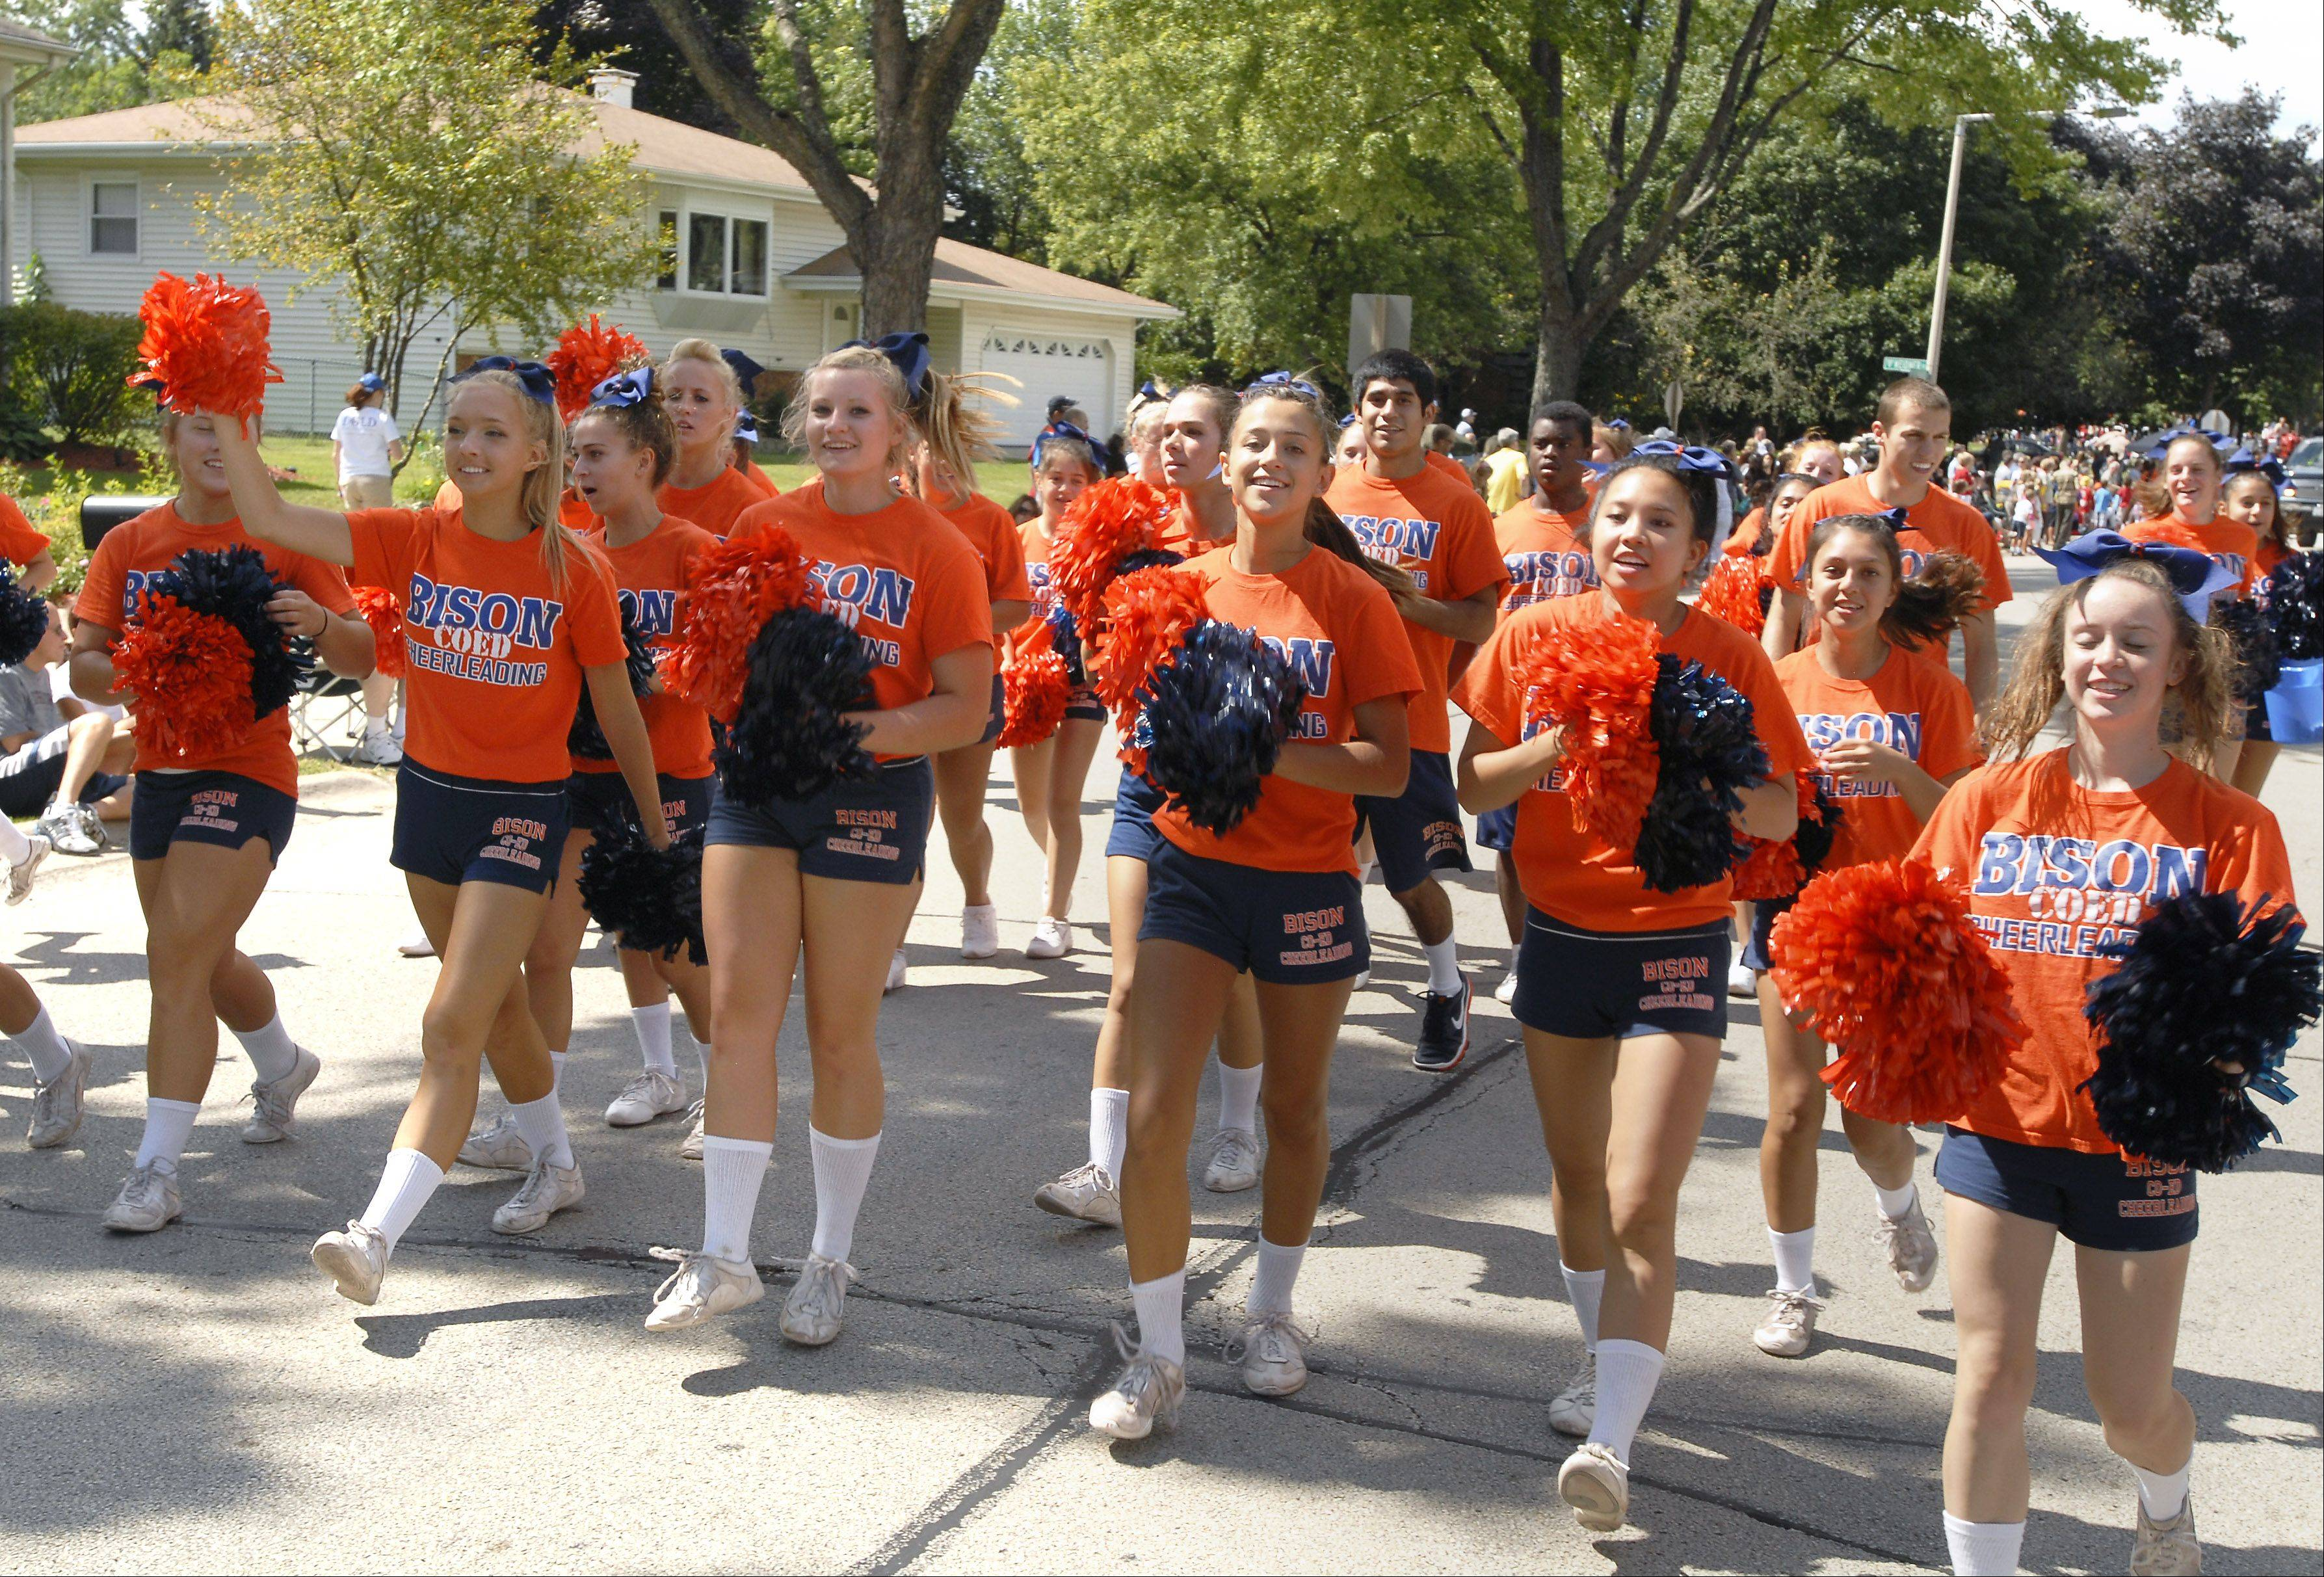 Bison cheerleaders follow the Buffalo Grove High School marching band at last year's Buffalo Grove Days parade.